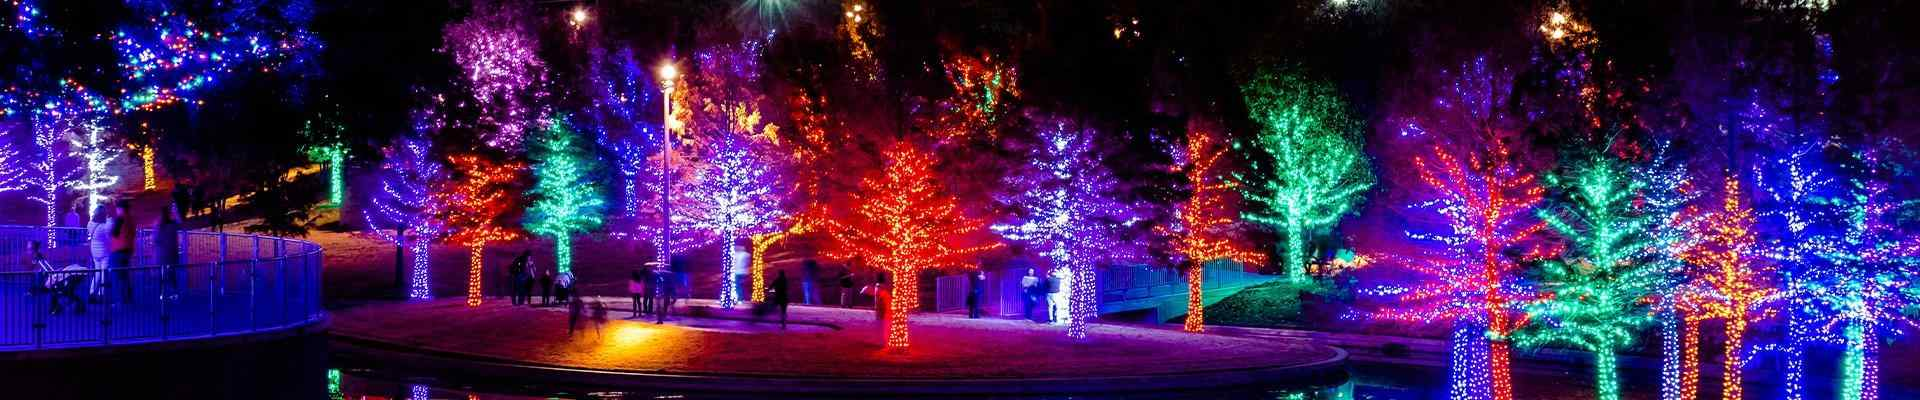 a row of trees in a park lit for the holidays in addison texas